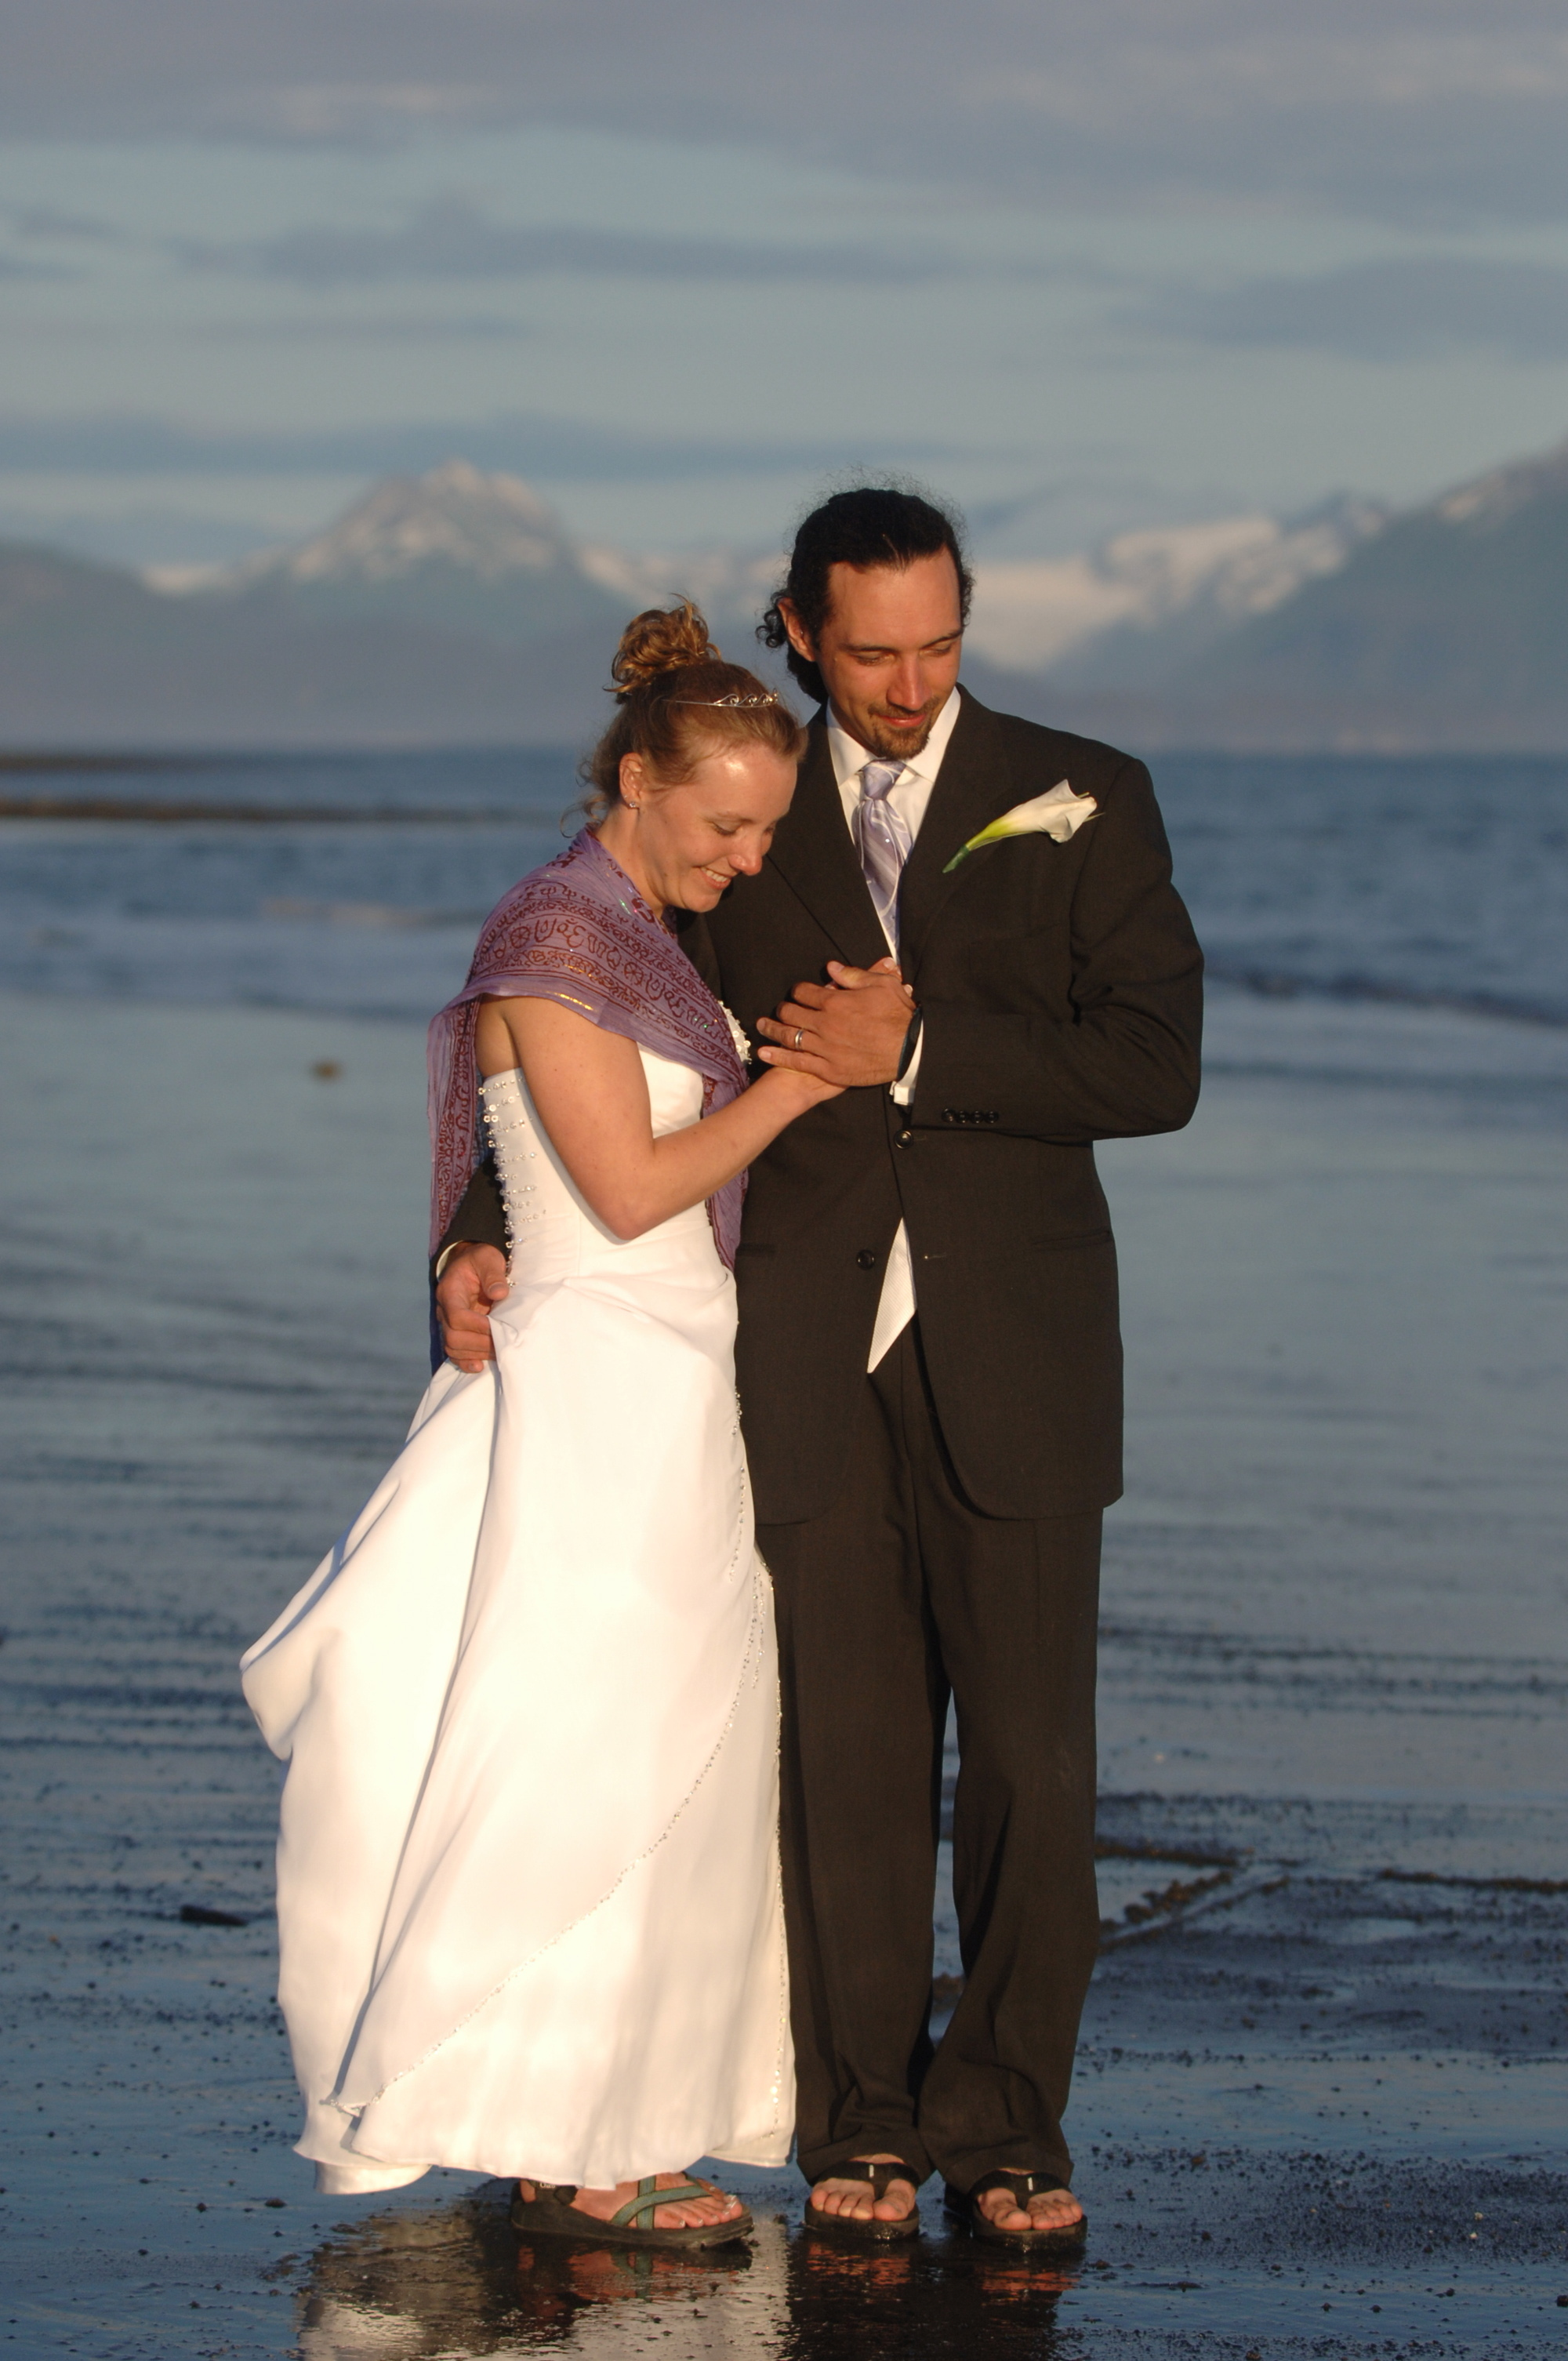 Wedding Dresses, Beach Wedding Dresses, Fashion, purple, dress, Beach, Outdoor, Nooy weddings